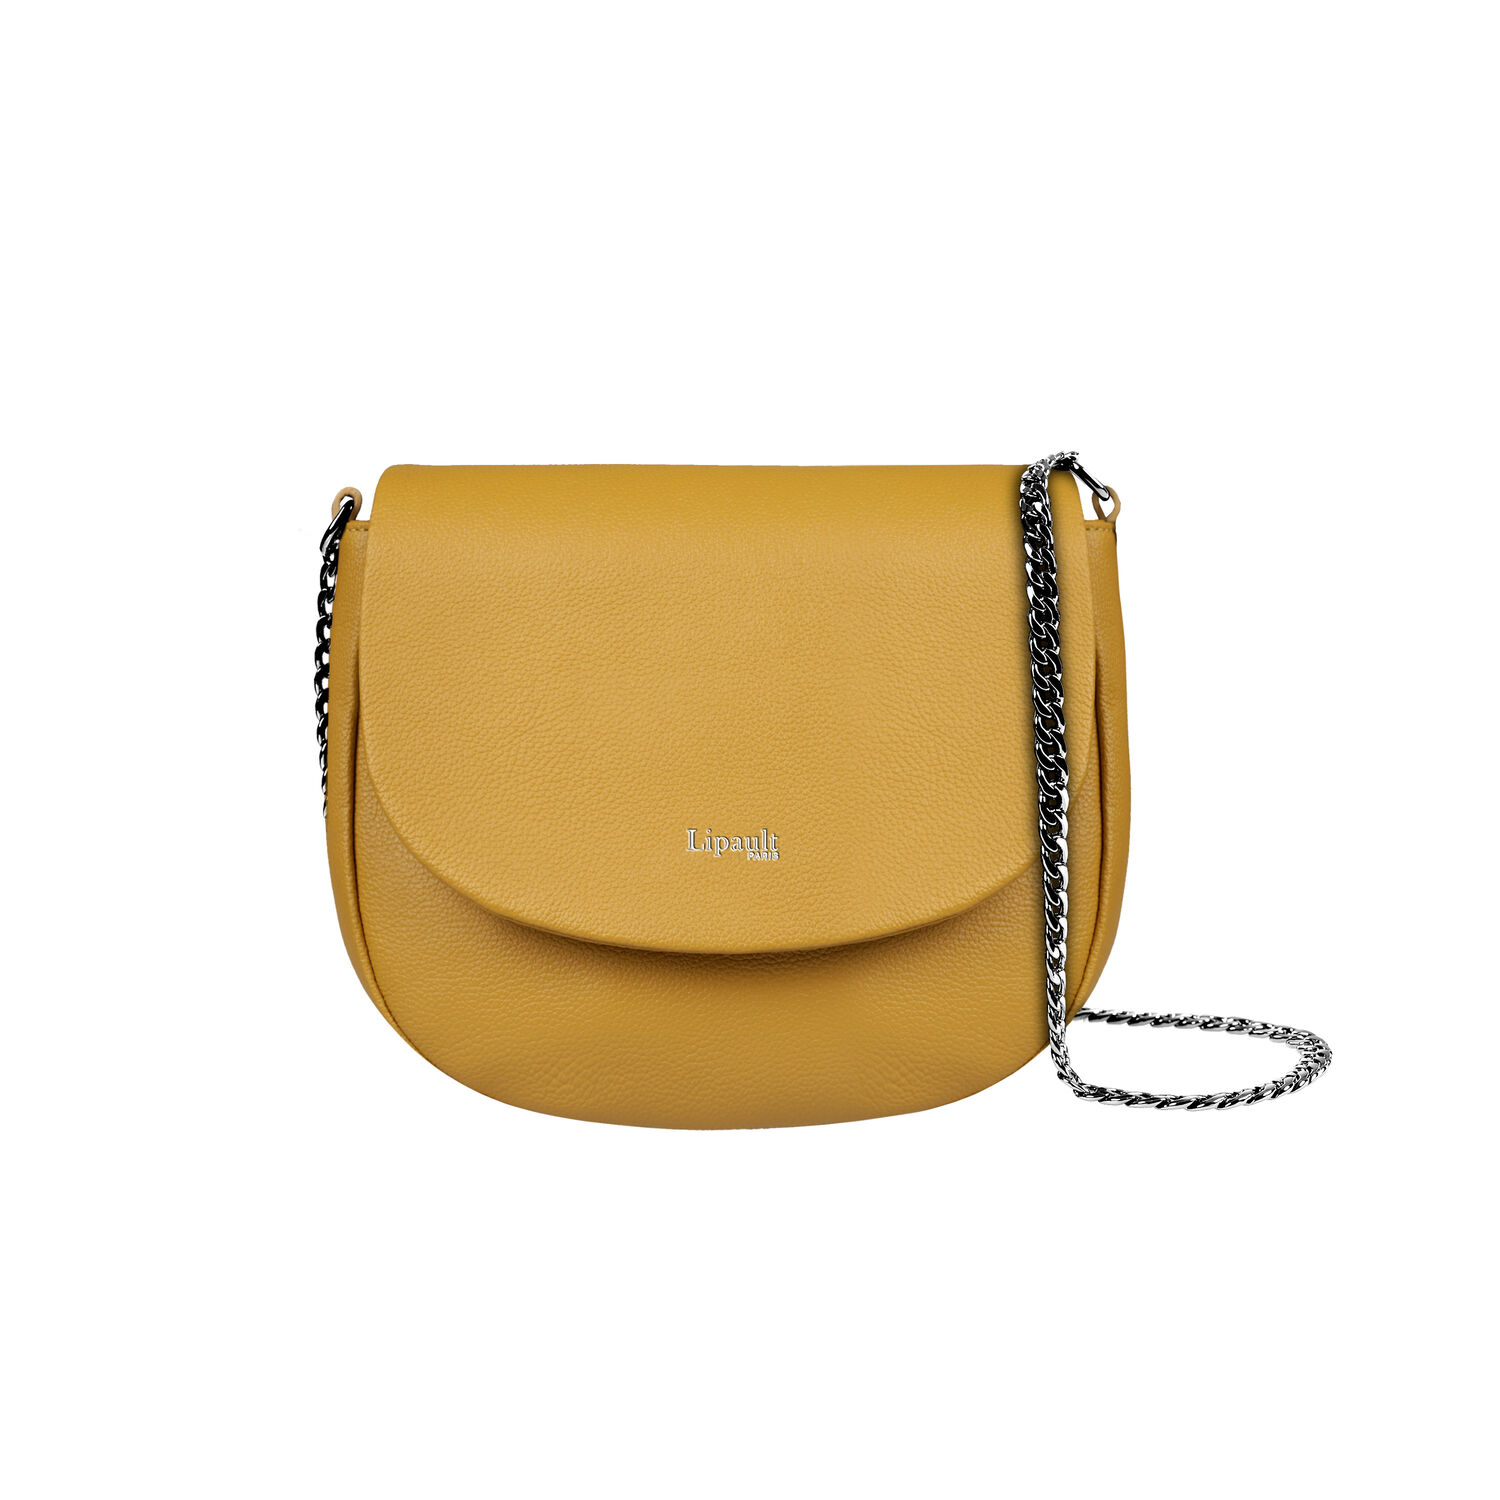 6d4cc733f4a3 Lipault Plume Elegance Saddle Bag in the color Mustard Leather.